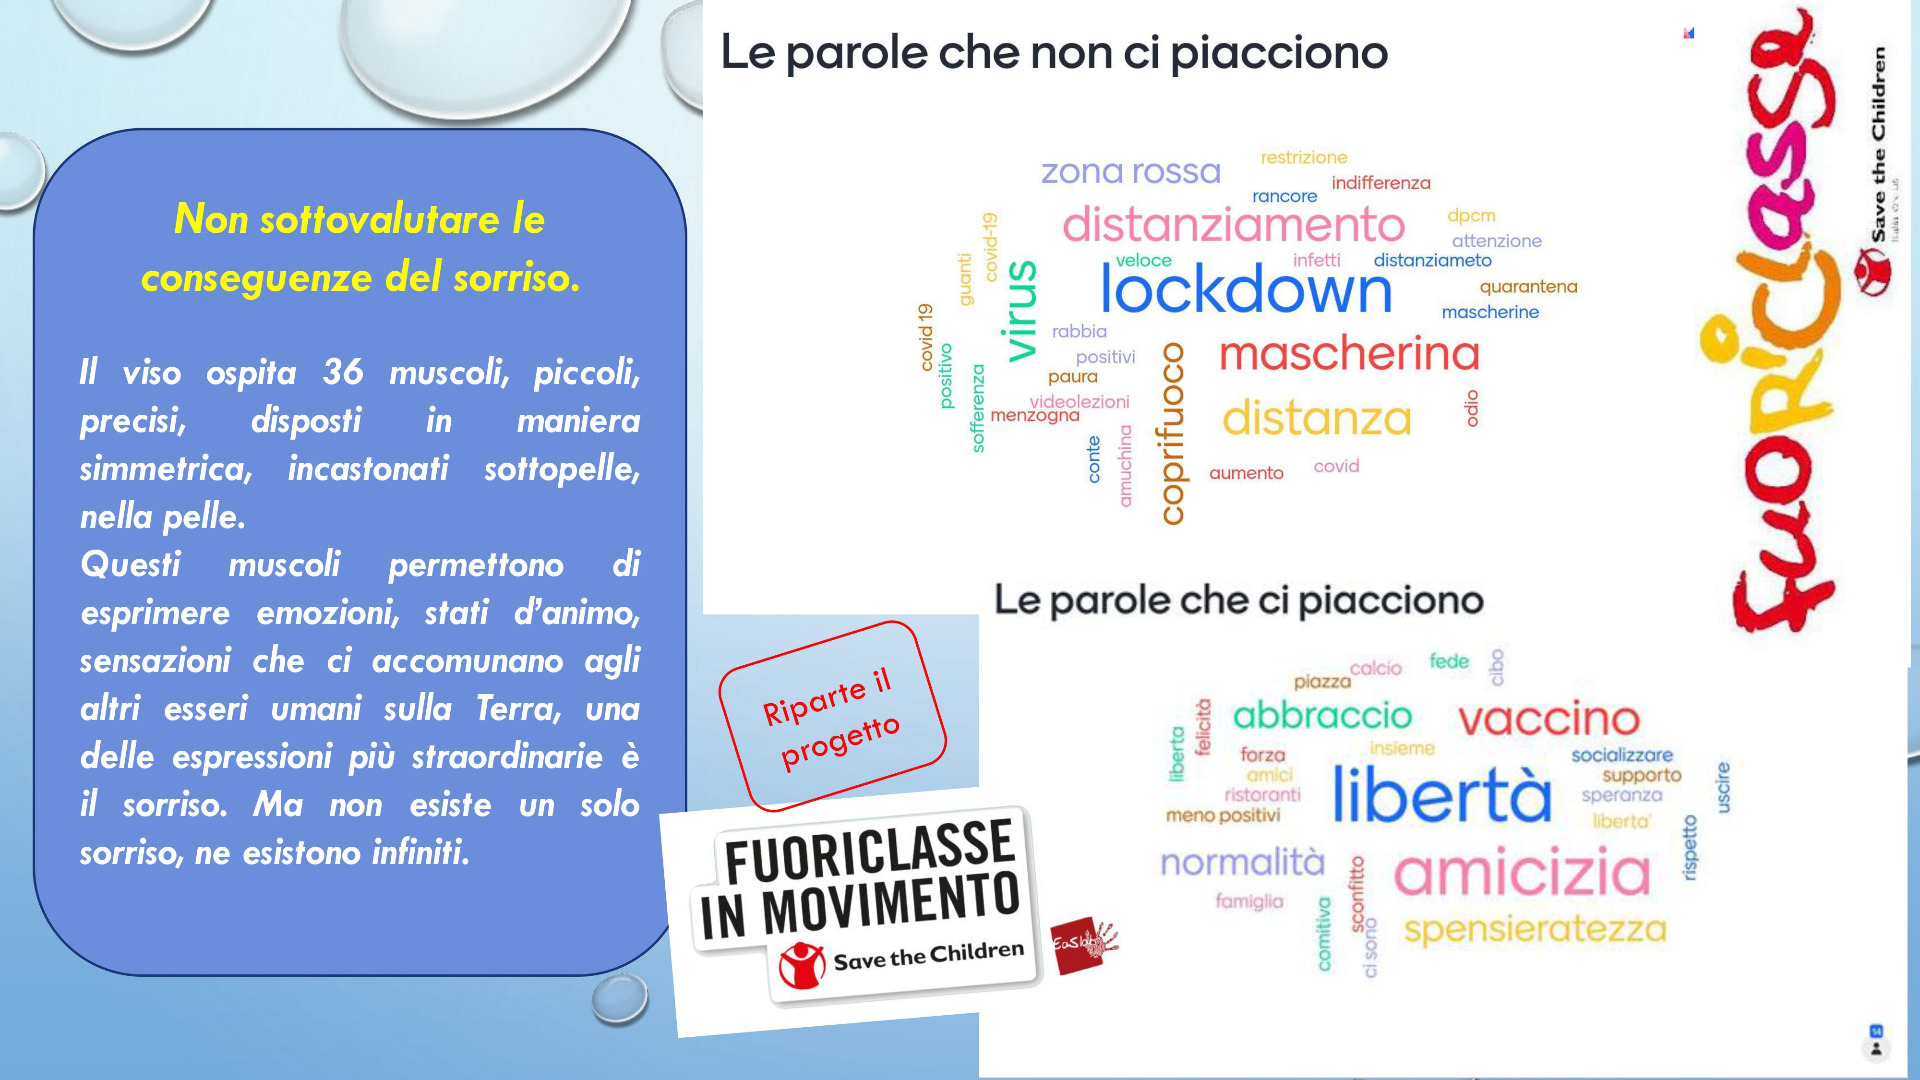 Riparte Fuoriclasse in movimento in collaborazione con Save the Children  - Anno scolastico 2020/2021